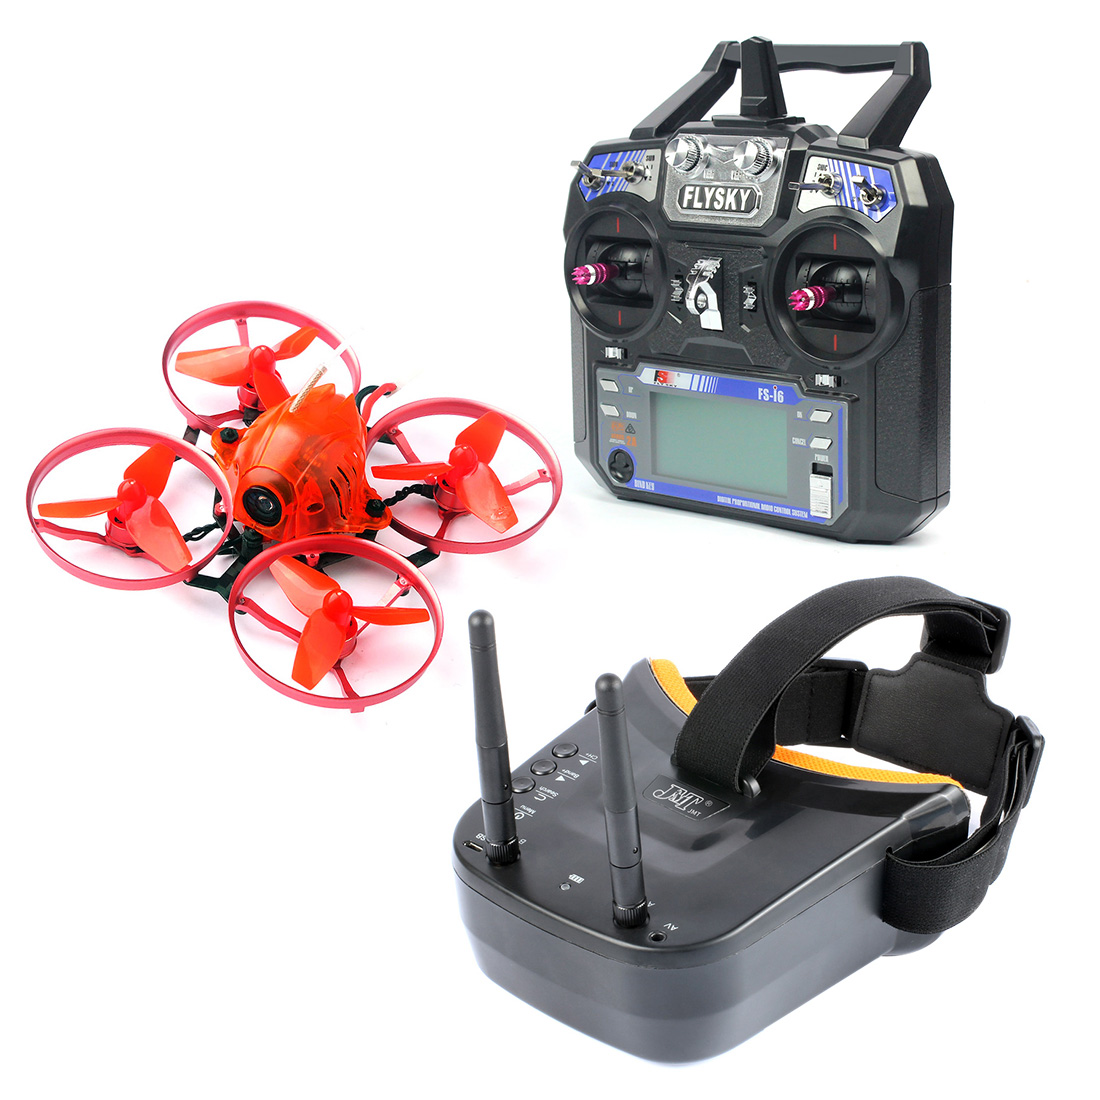 Snapper7 Brushless Micro 75mm 5.8g FPV Racer Drone 2.4g 6CH RC Quadcopter RTF 700TVL Caméra VTX et double Antenne Mini Lunettes